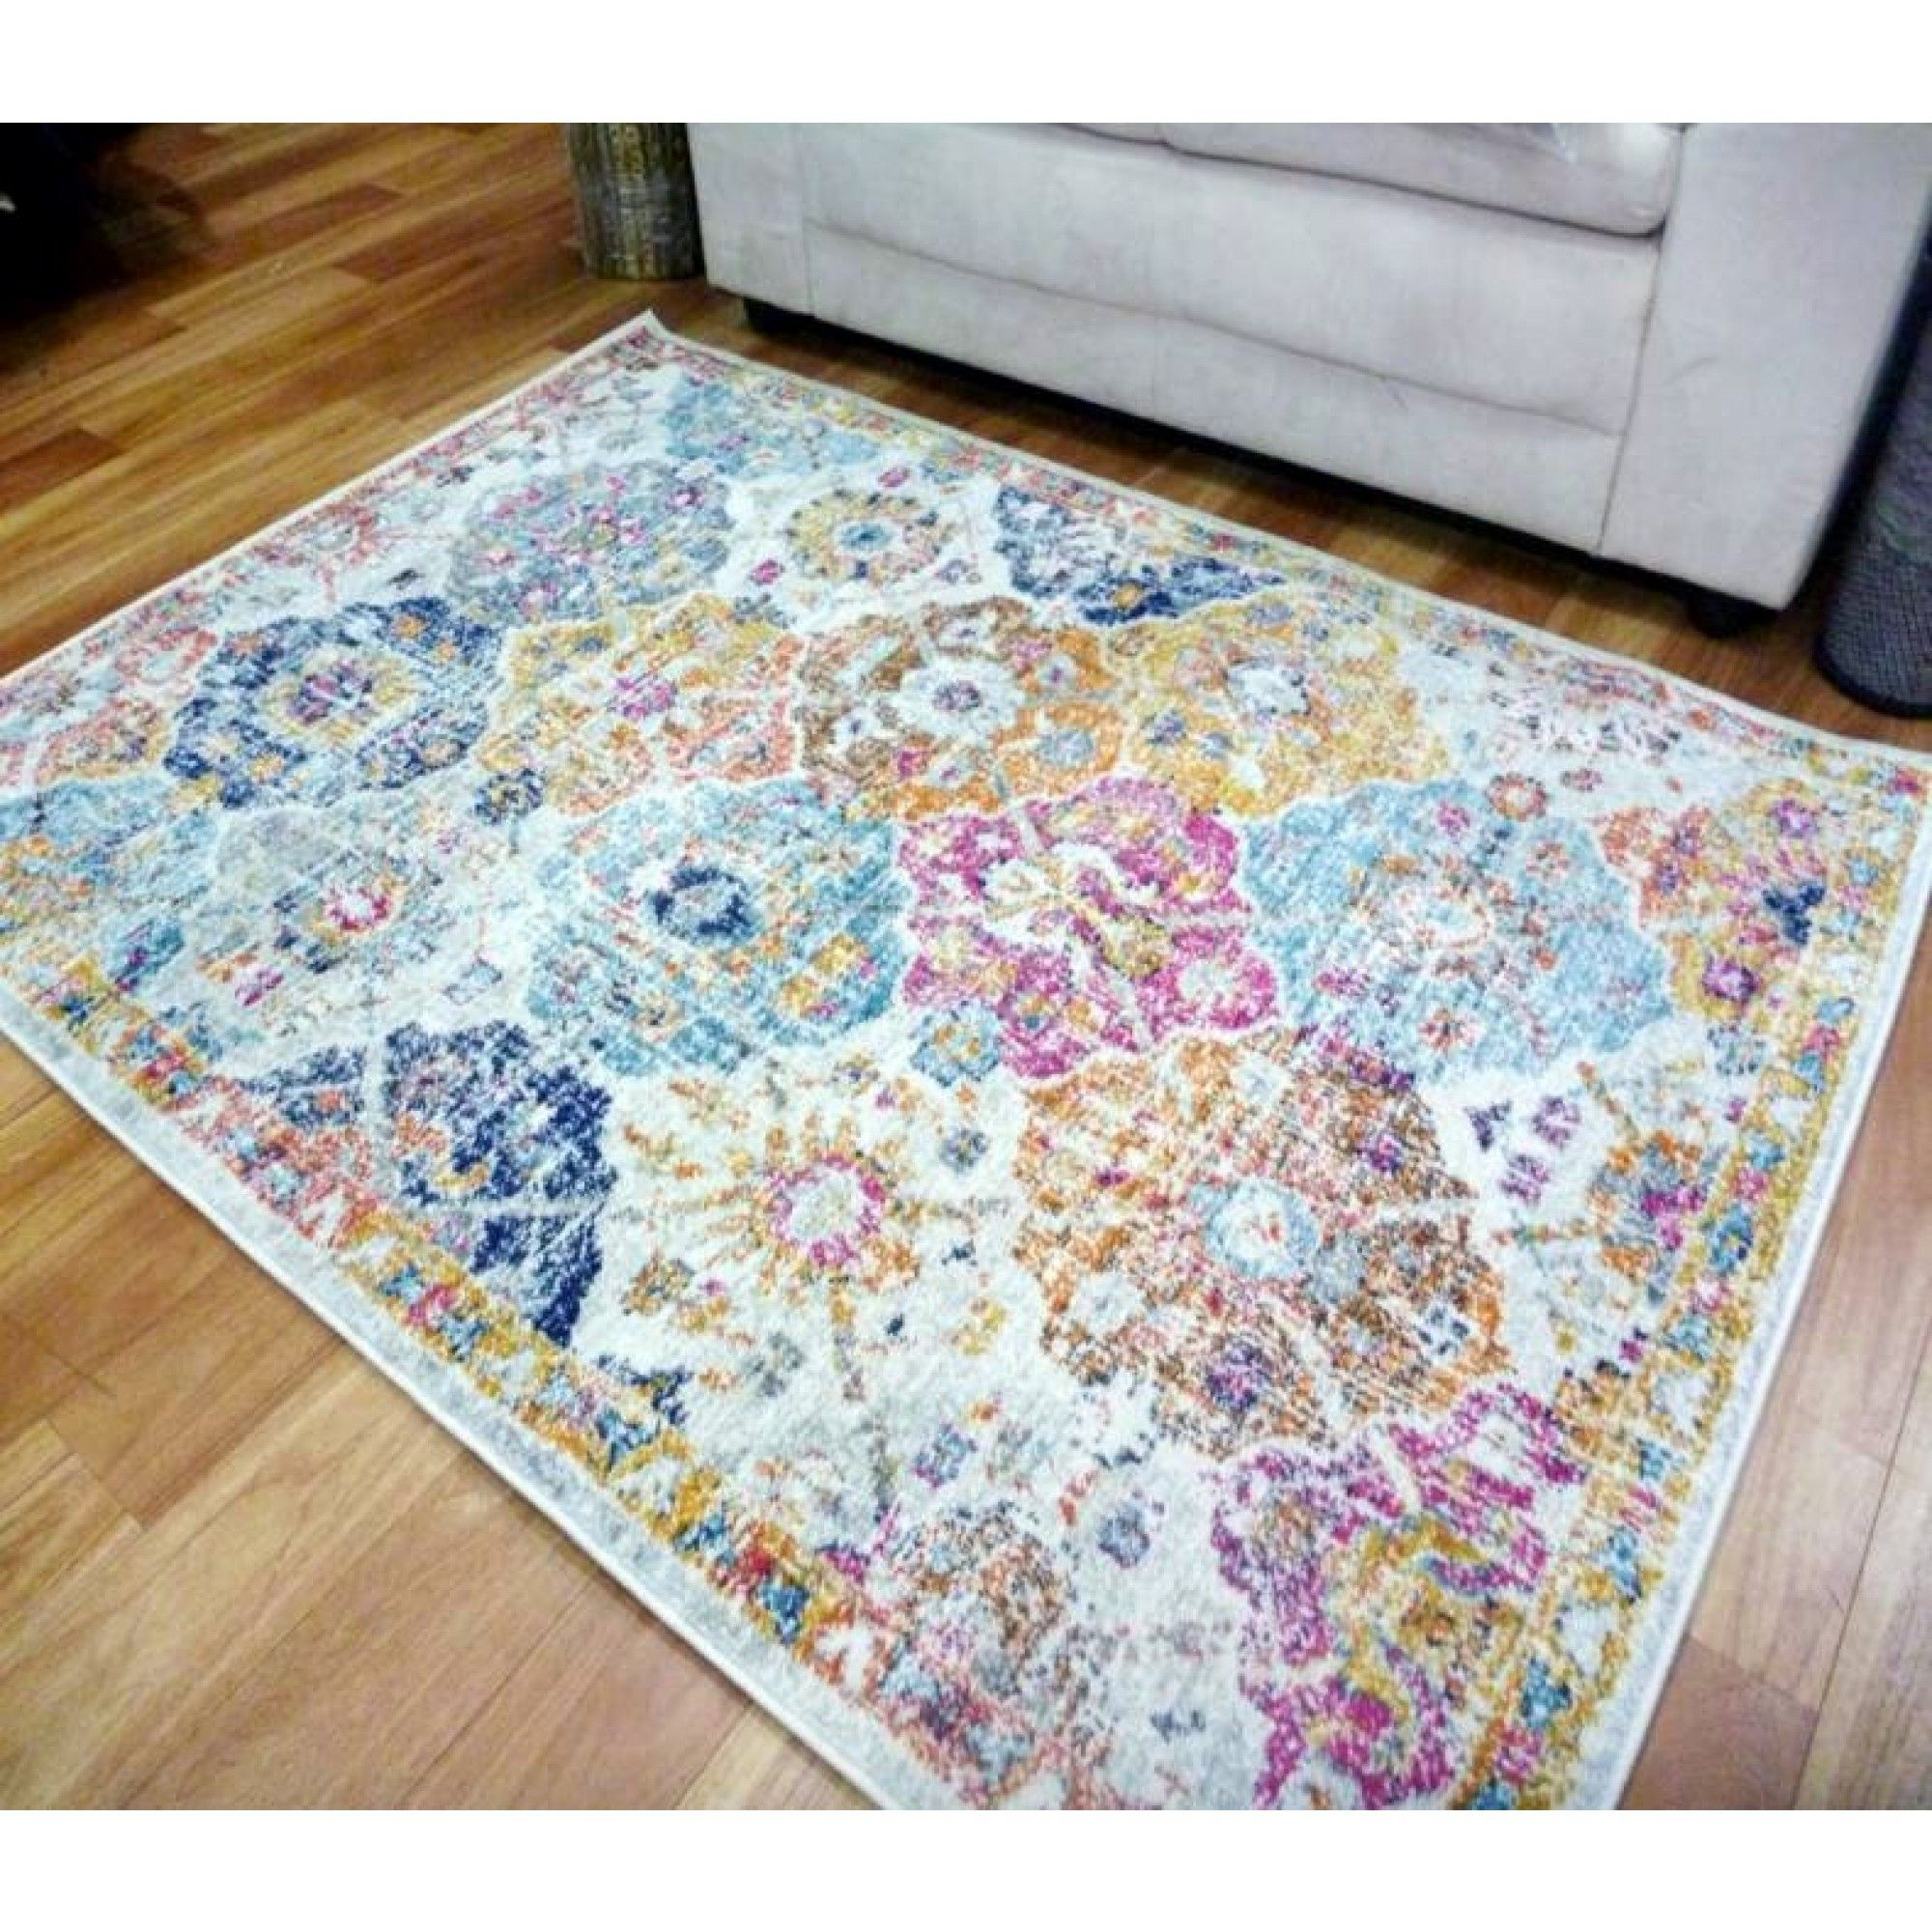 Washed Out Antique Persian Design Floor Area Rugs Contemporary Coloured Wilton Garden